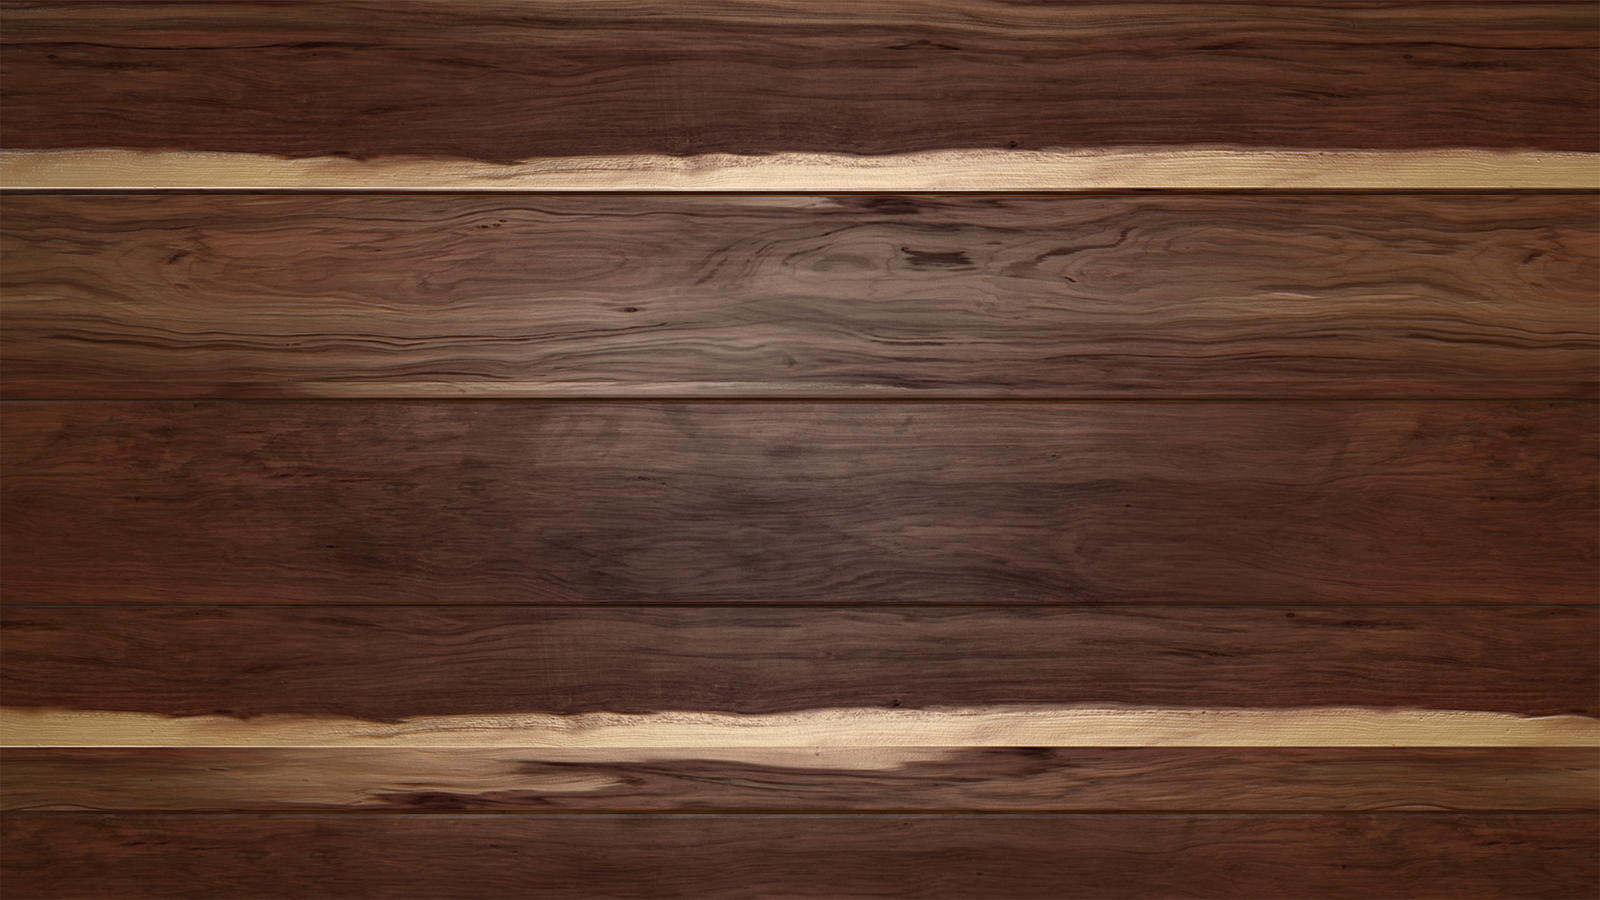 Wood Planks Background nr 1 by RVMProductions on DeviantArt